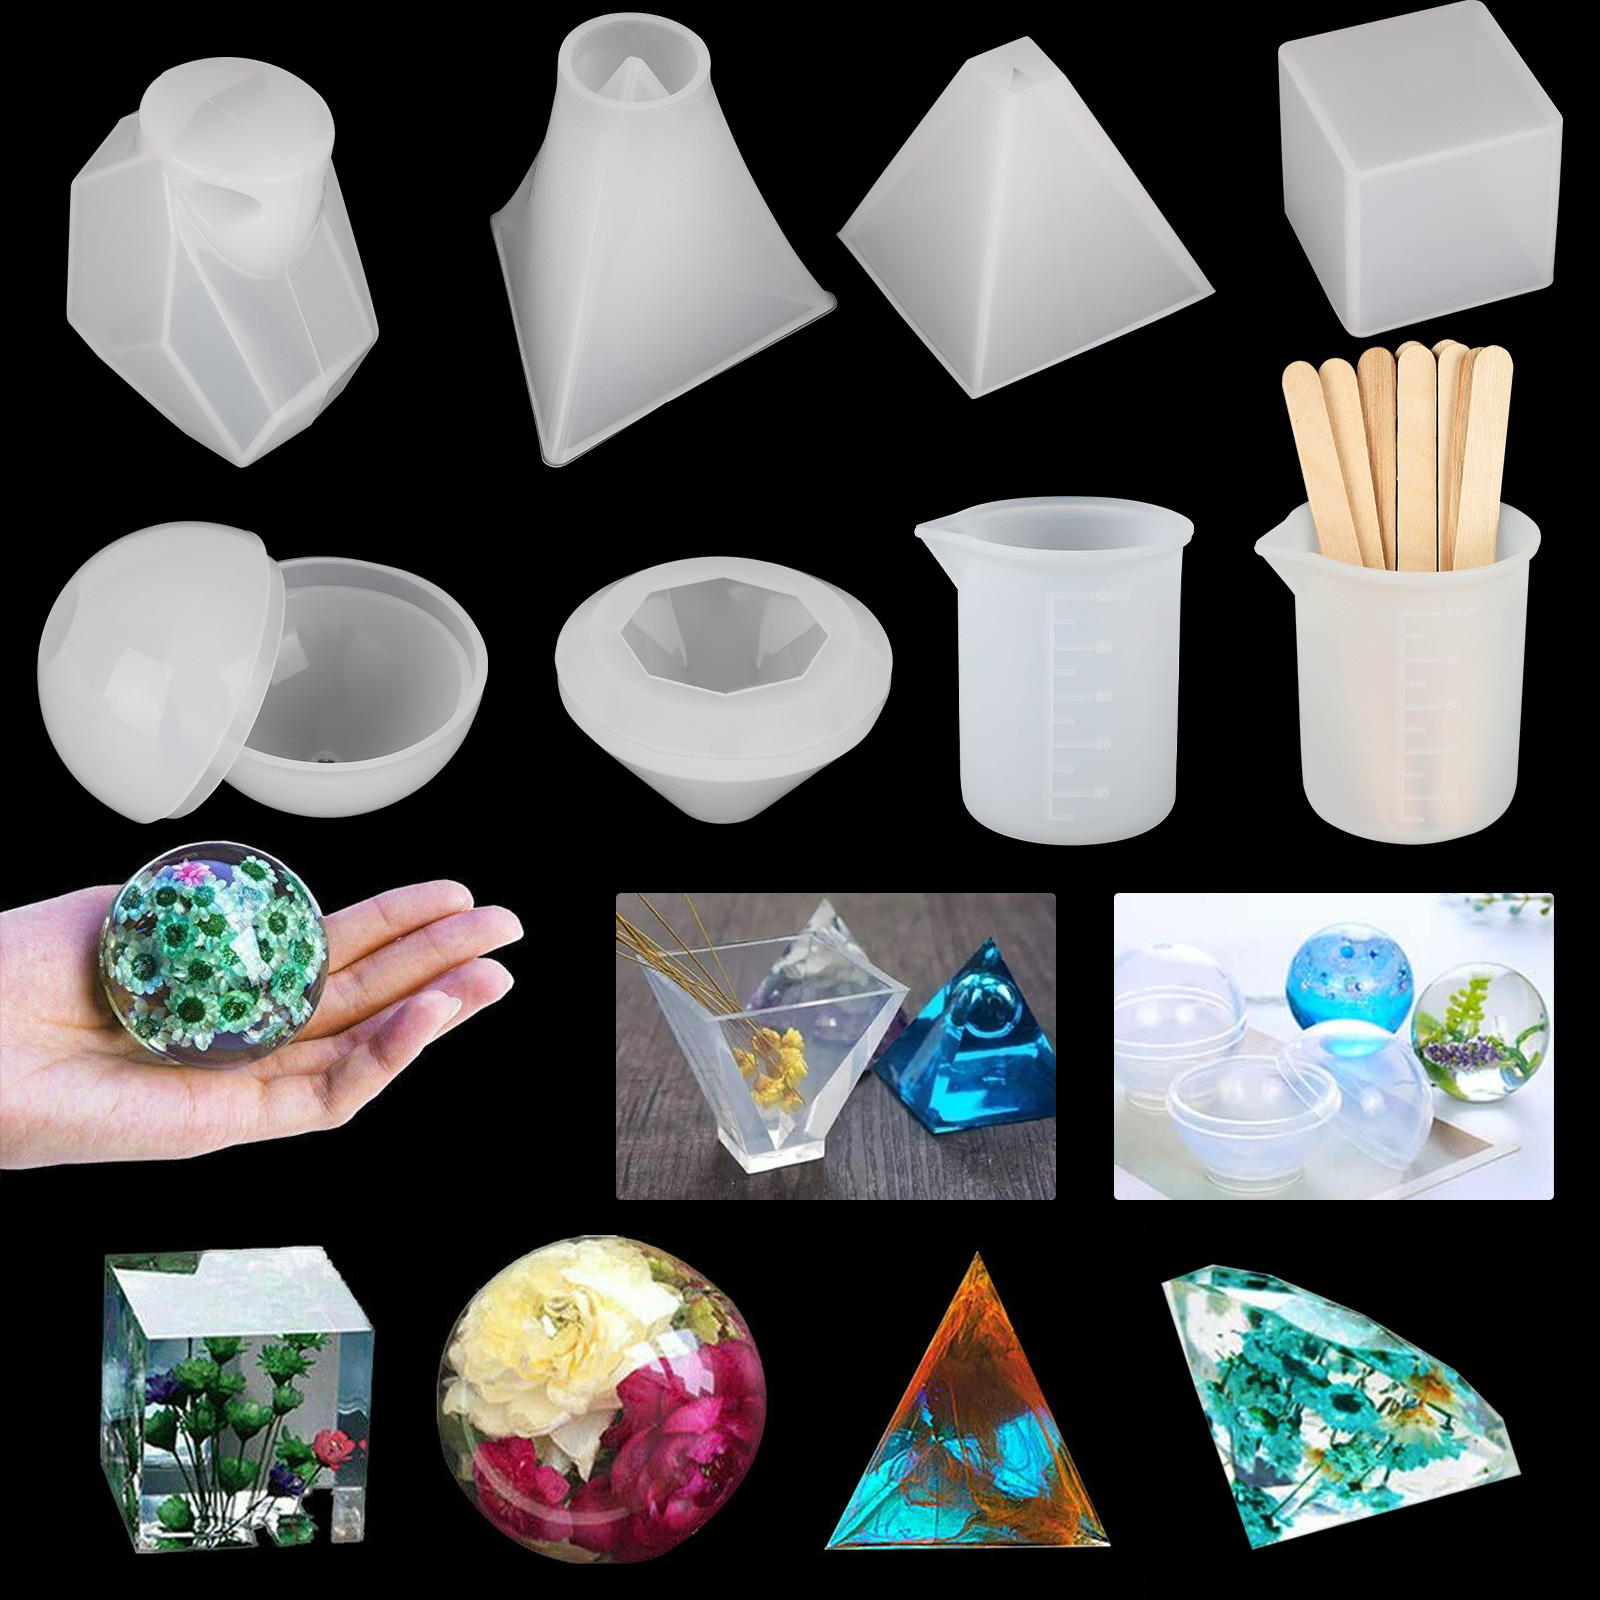 Silicone DIY Resin Casting Mold Jewelry Making Epoxy Mould Craft Tool